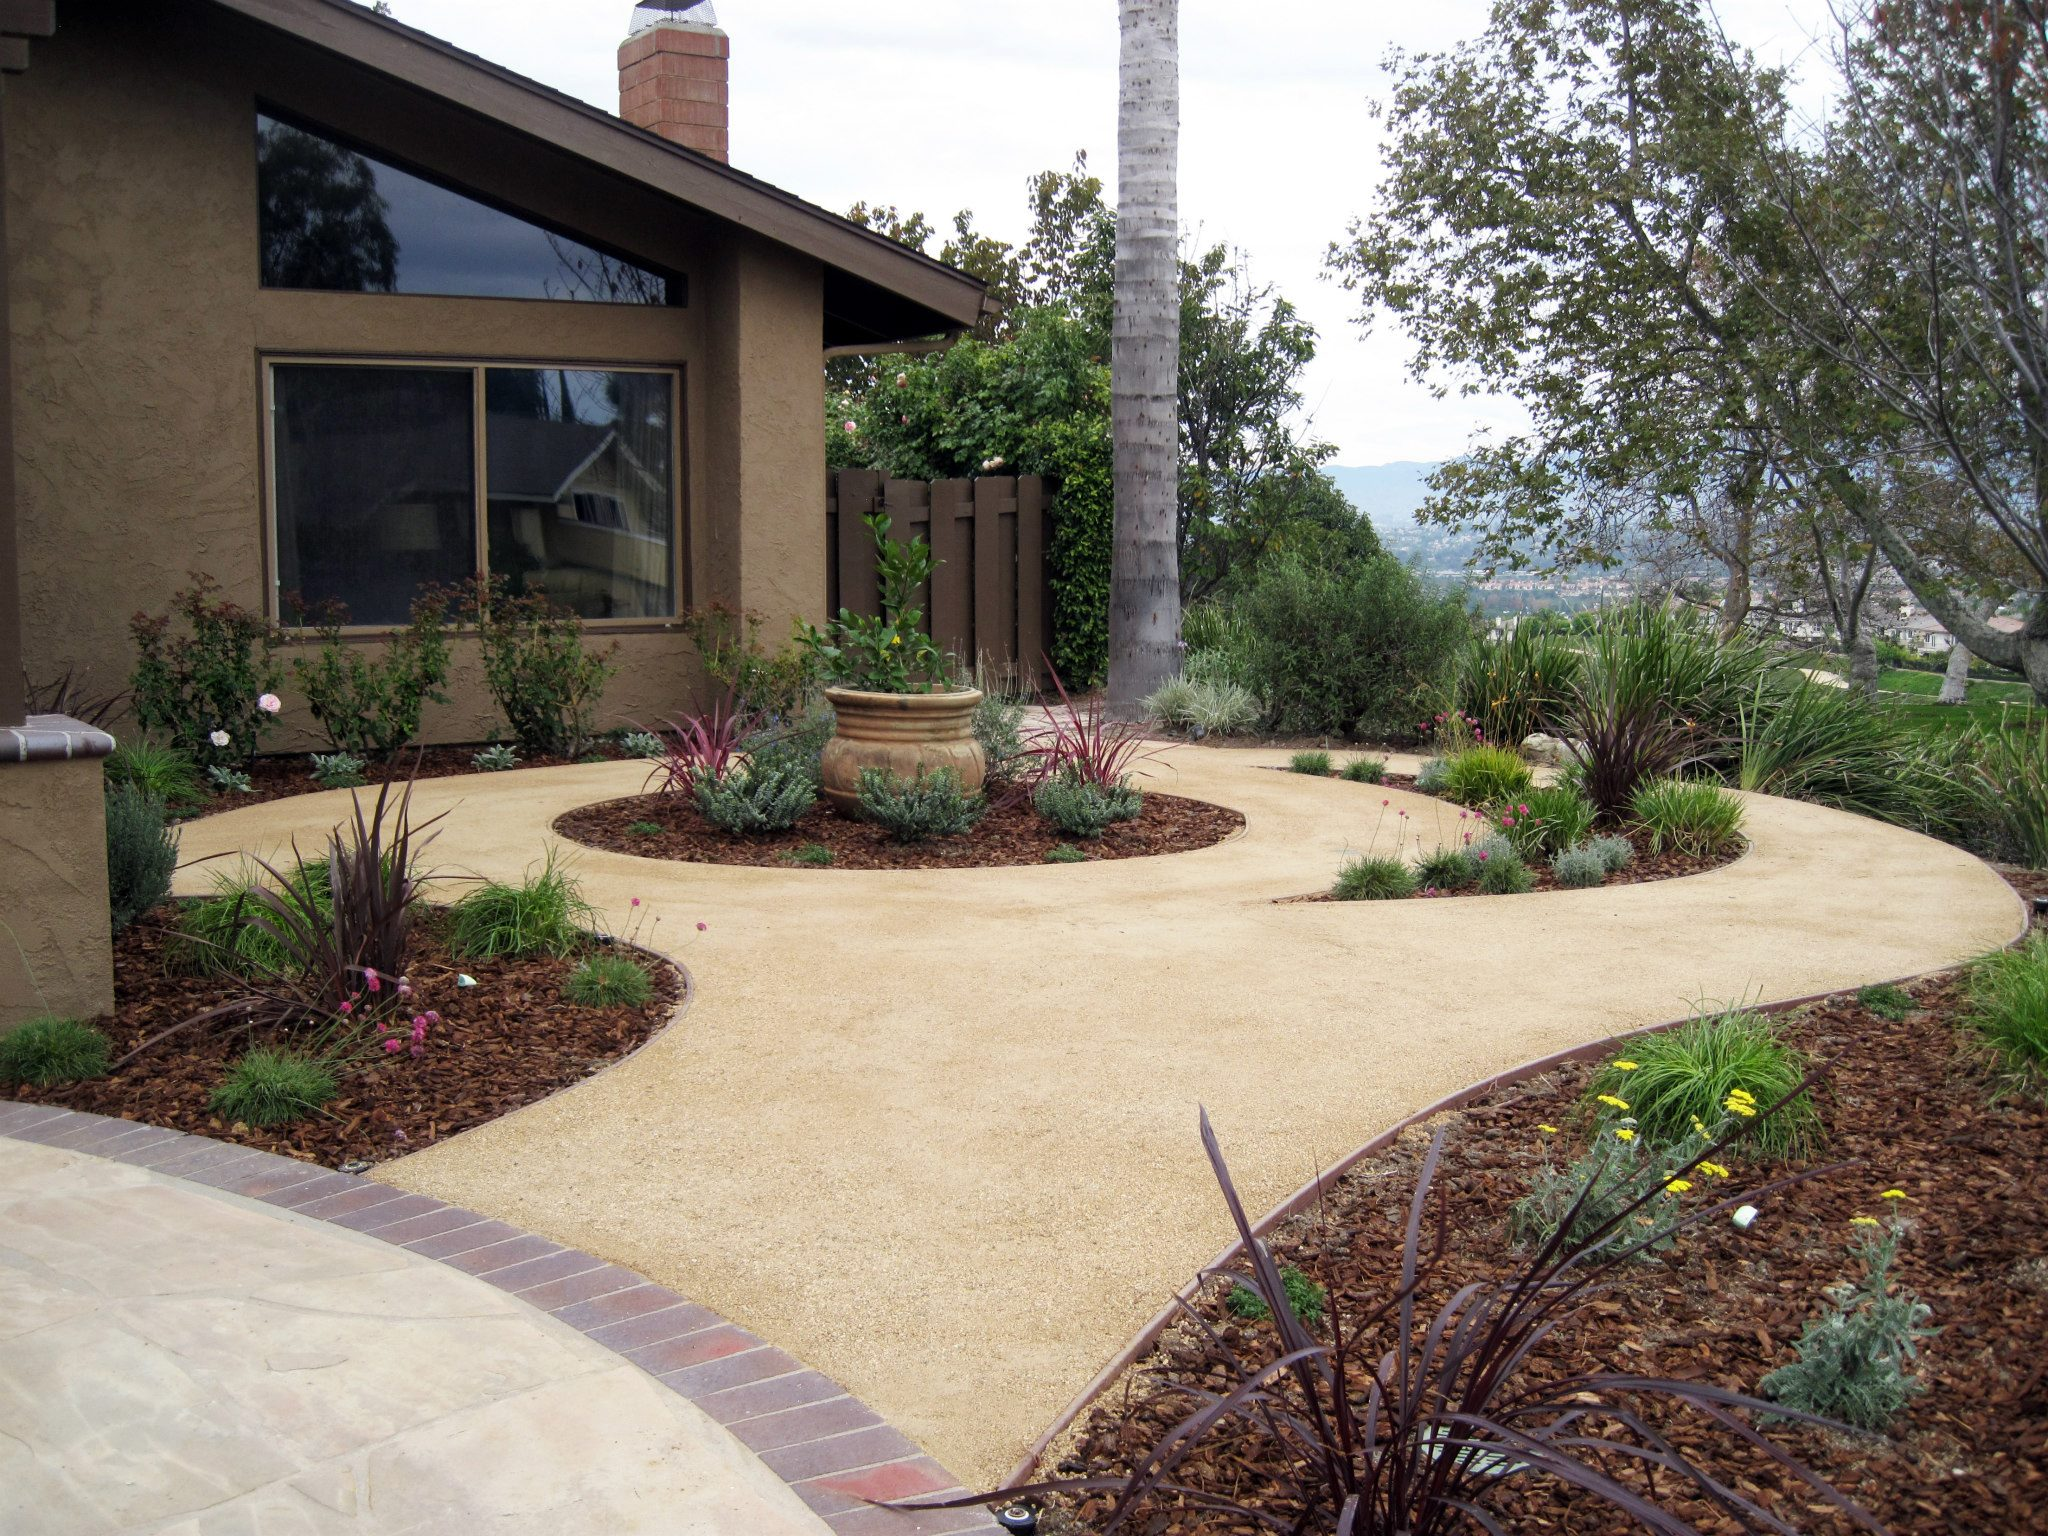 Local expert armstrong garden centers san diego ca for Local landscape gardeners